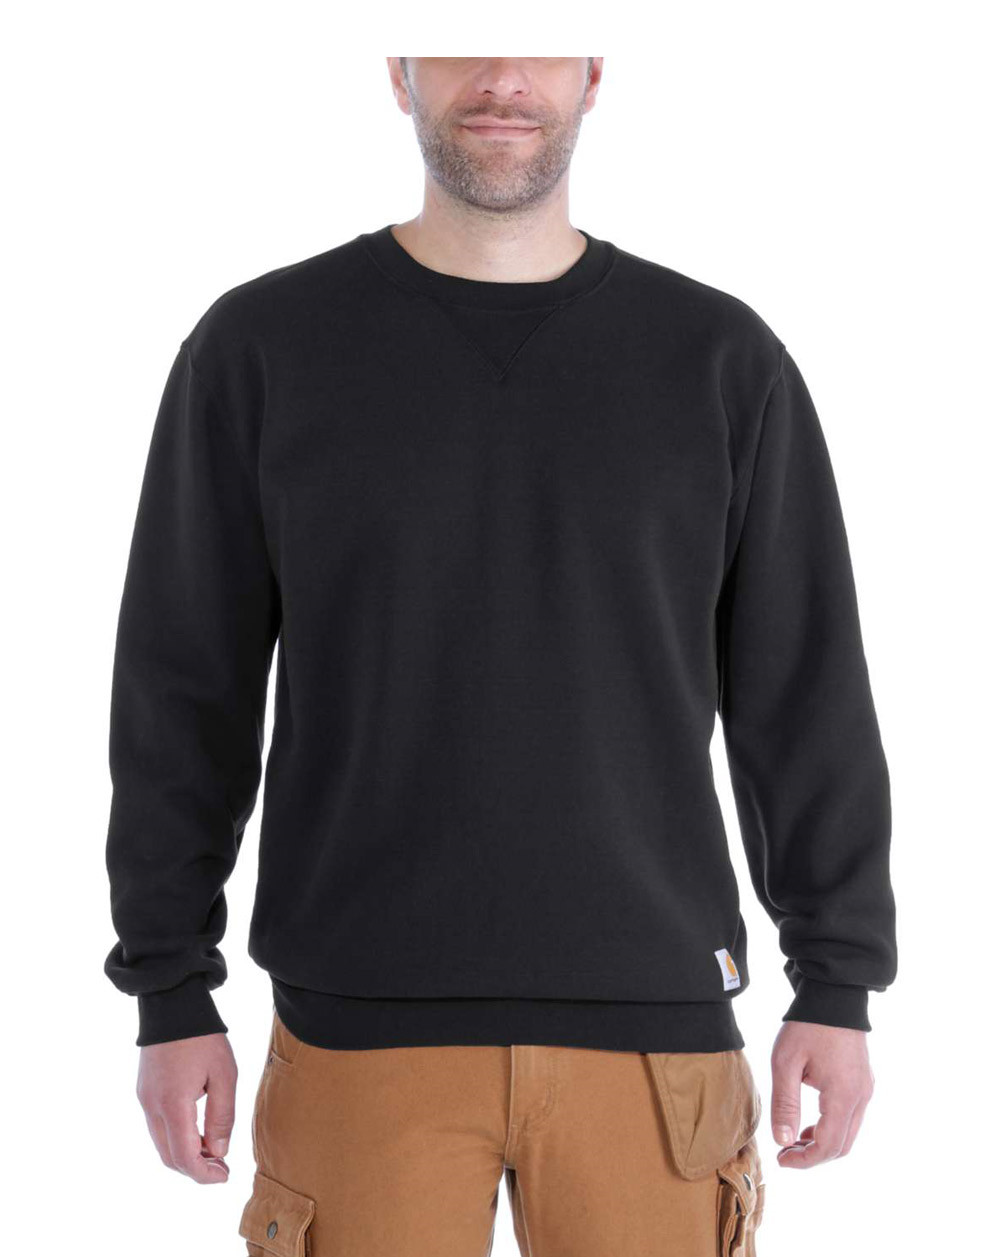 Image of   Carhartt Midweight Crewneck Sweatshirt (Sort, XL)